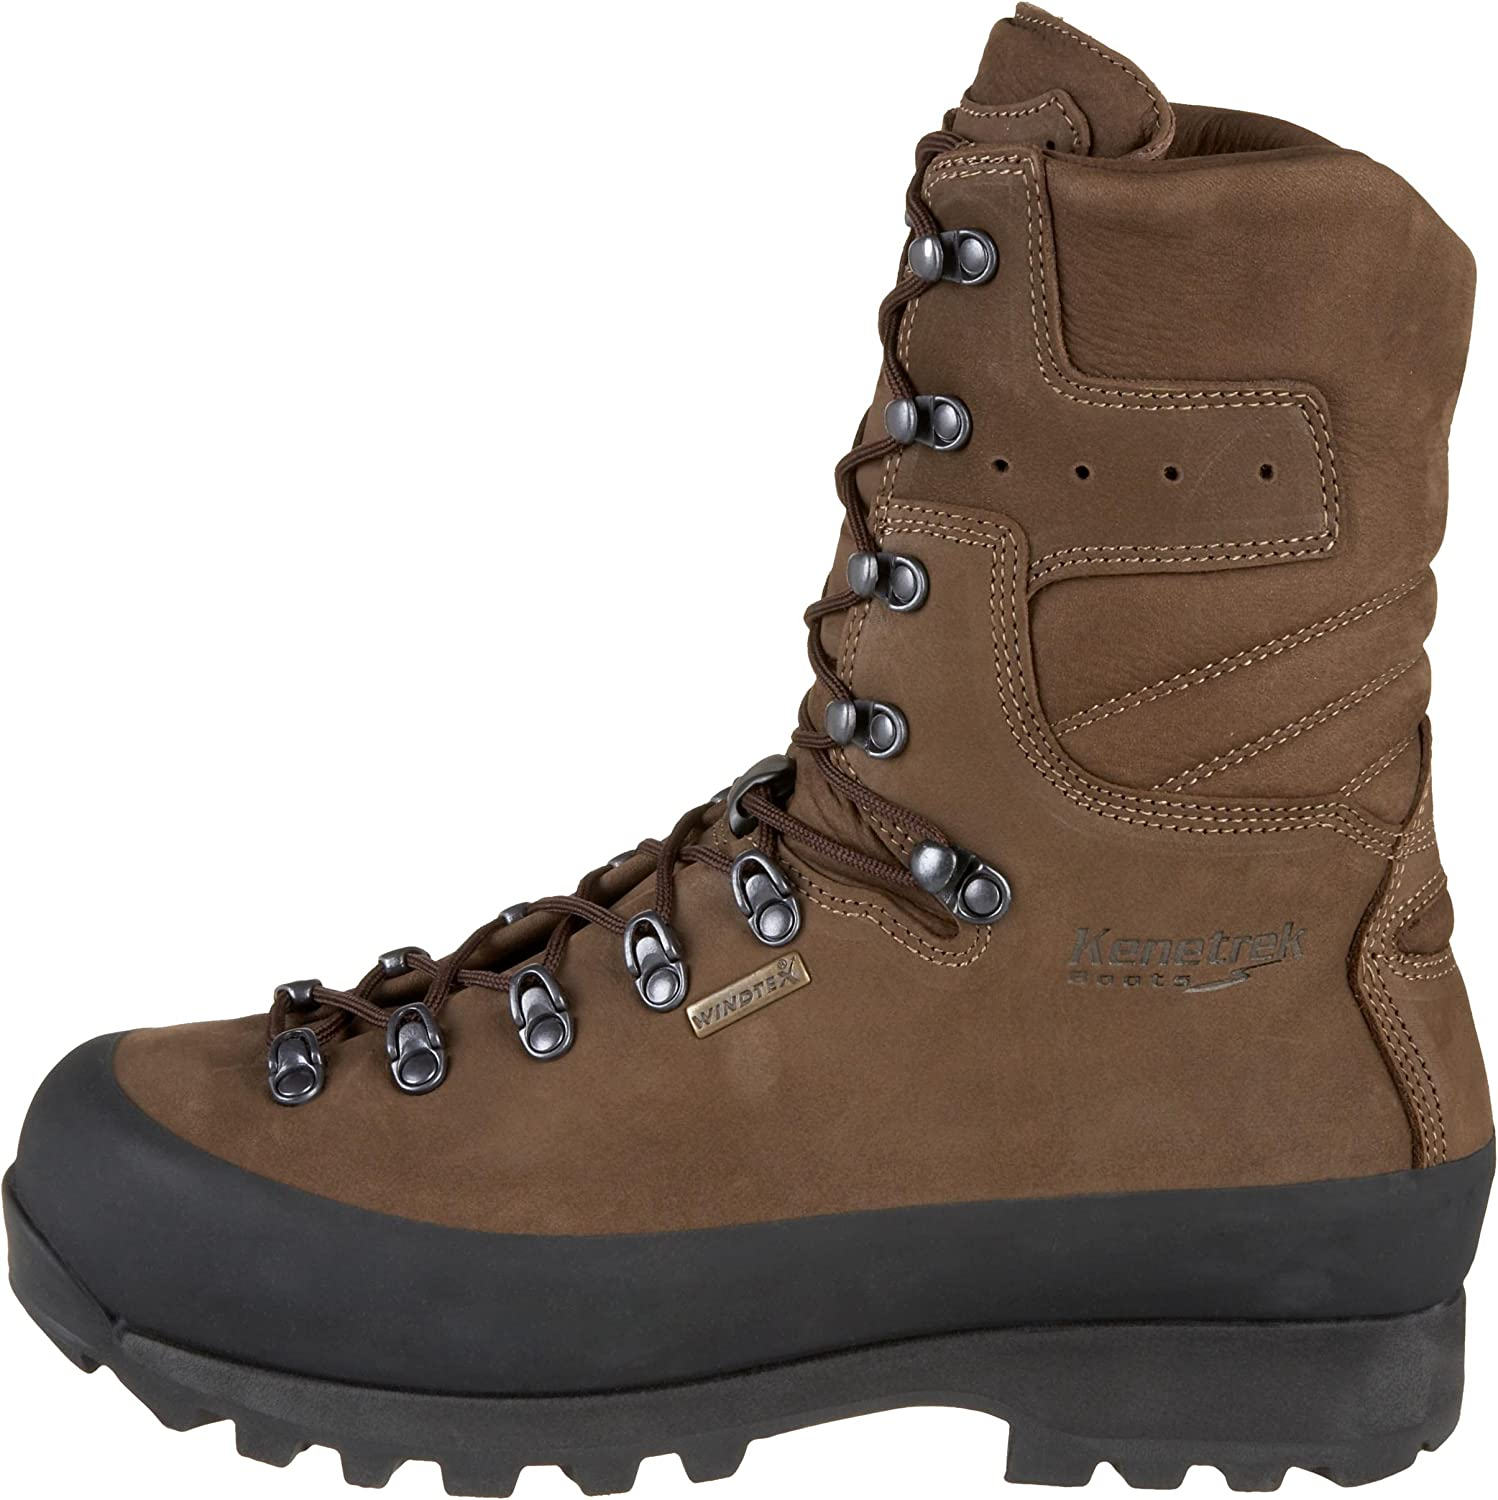 Kenetrek Men/'s Brown Size 11.5 W Mountain Extreme Non-Insulated  Hunting Boots